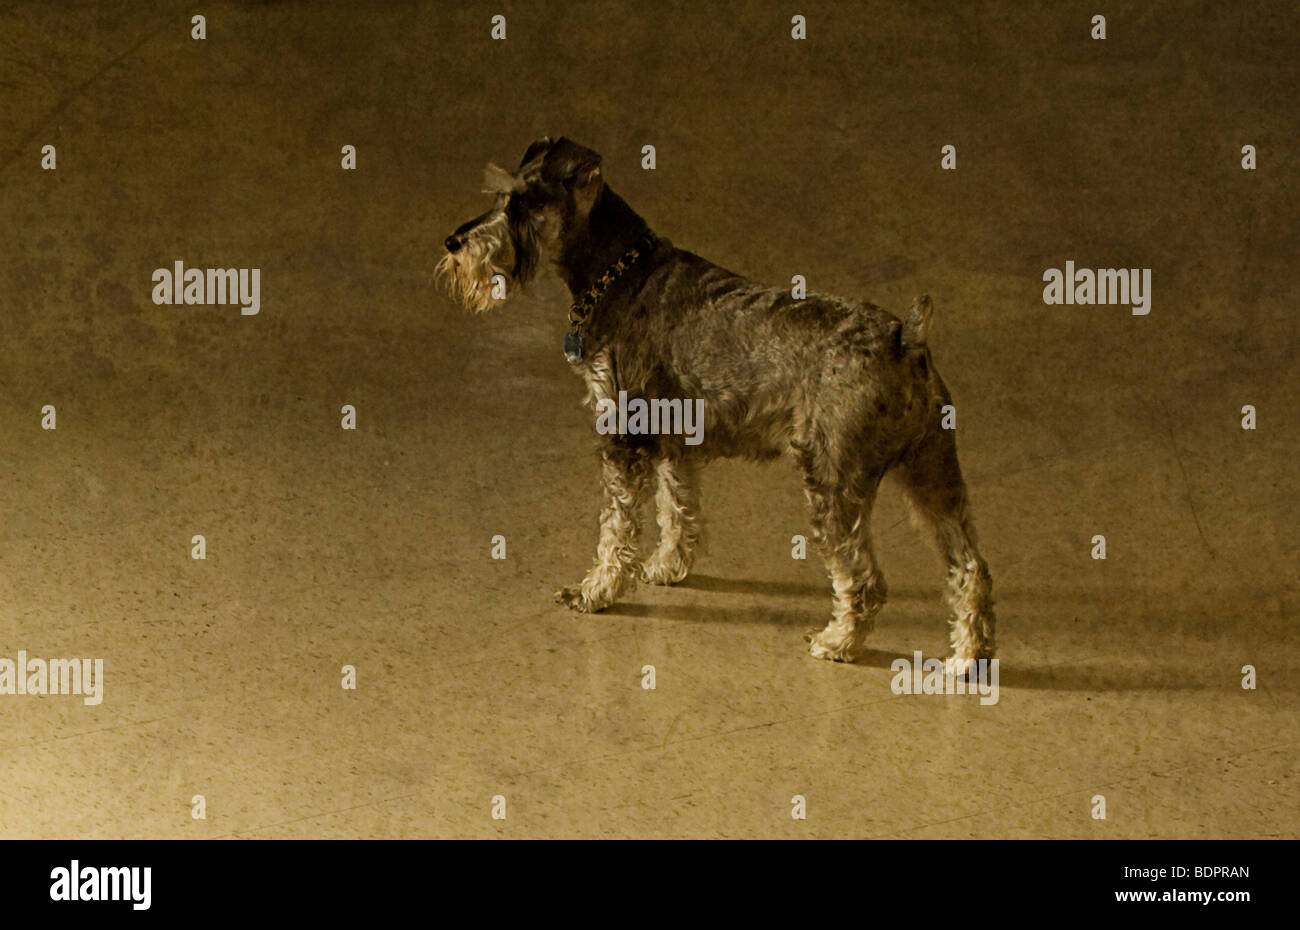 A small dog waiting - Stock Image